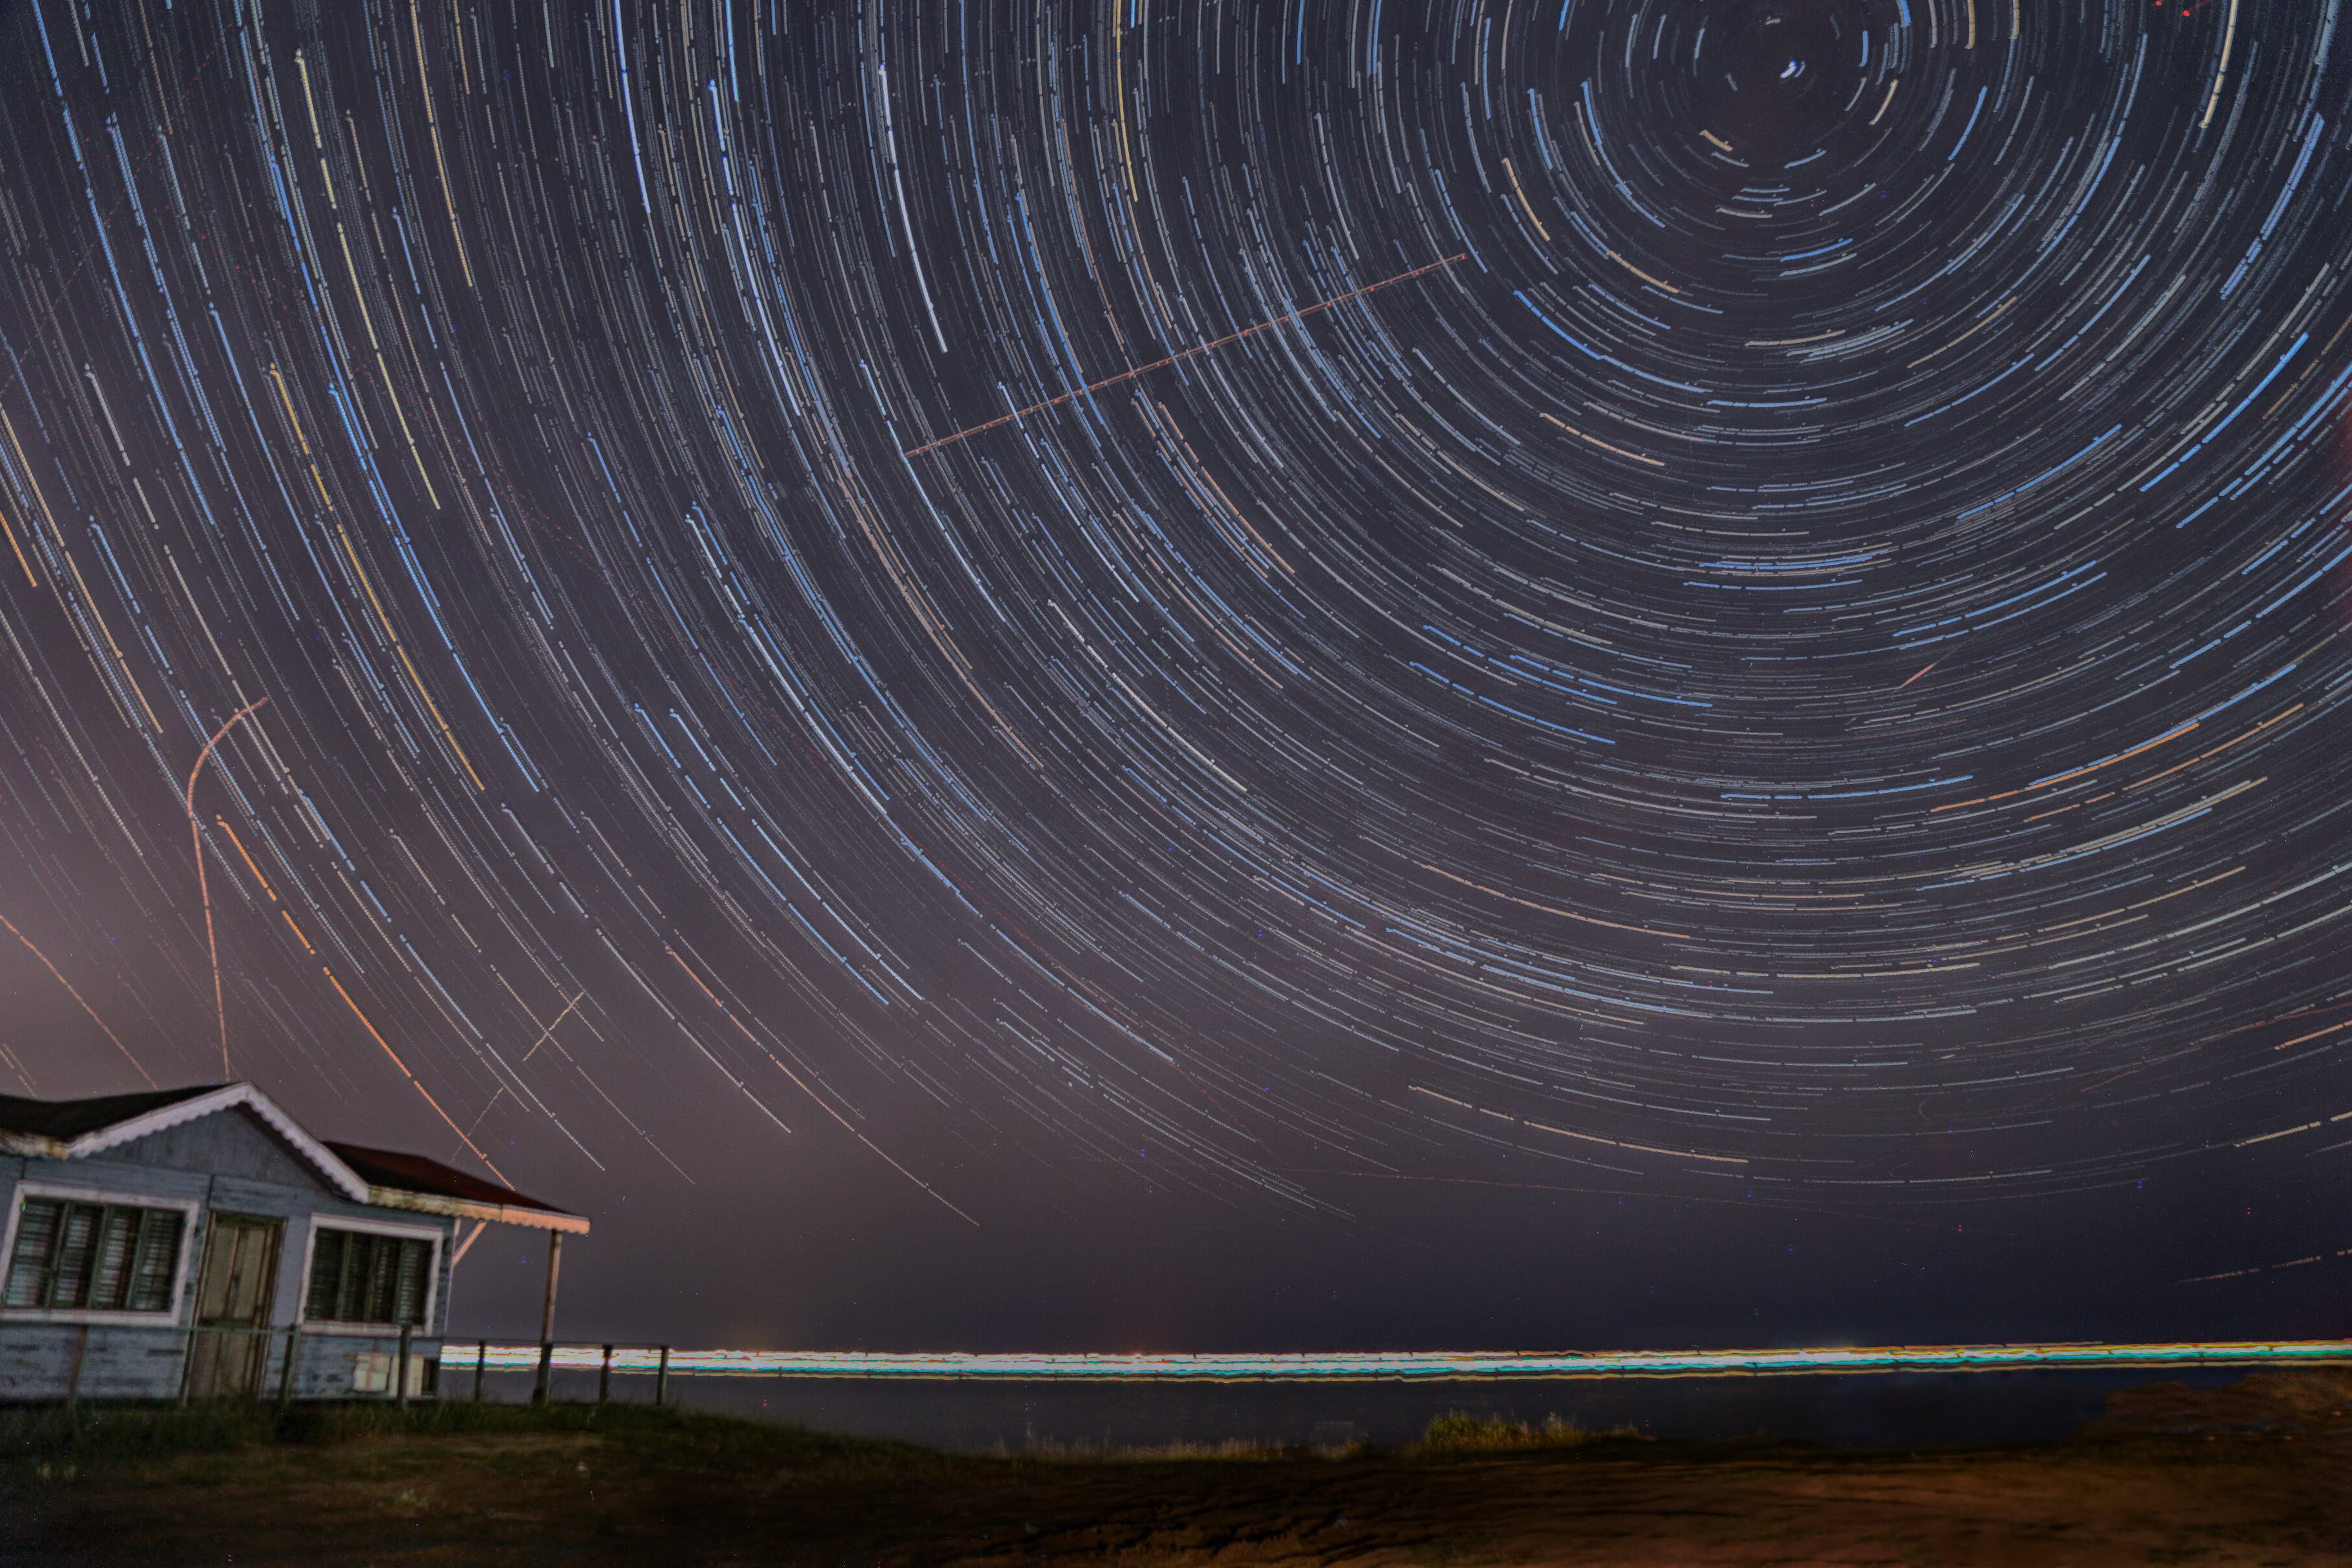 Free stock photo of night, star trails photography